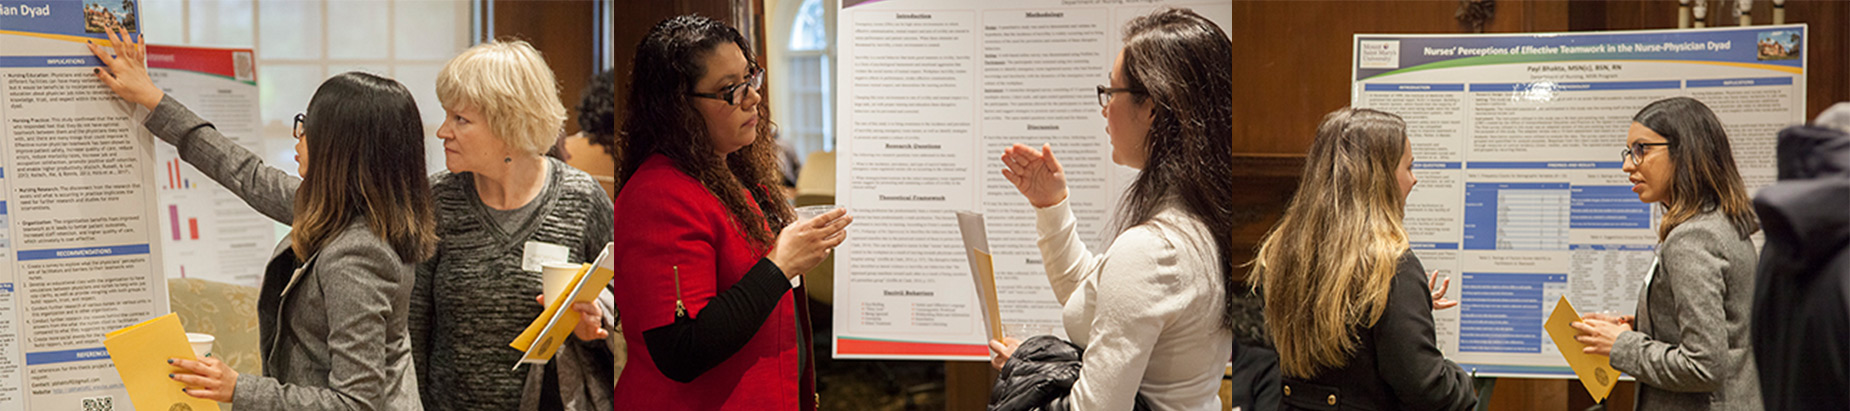 two women talking in front of project poster